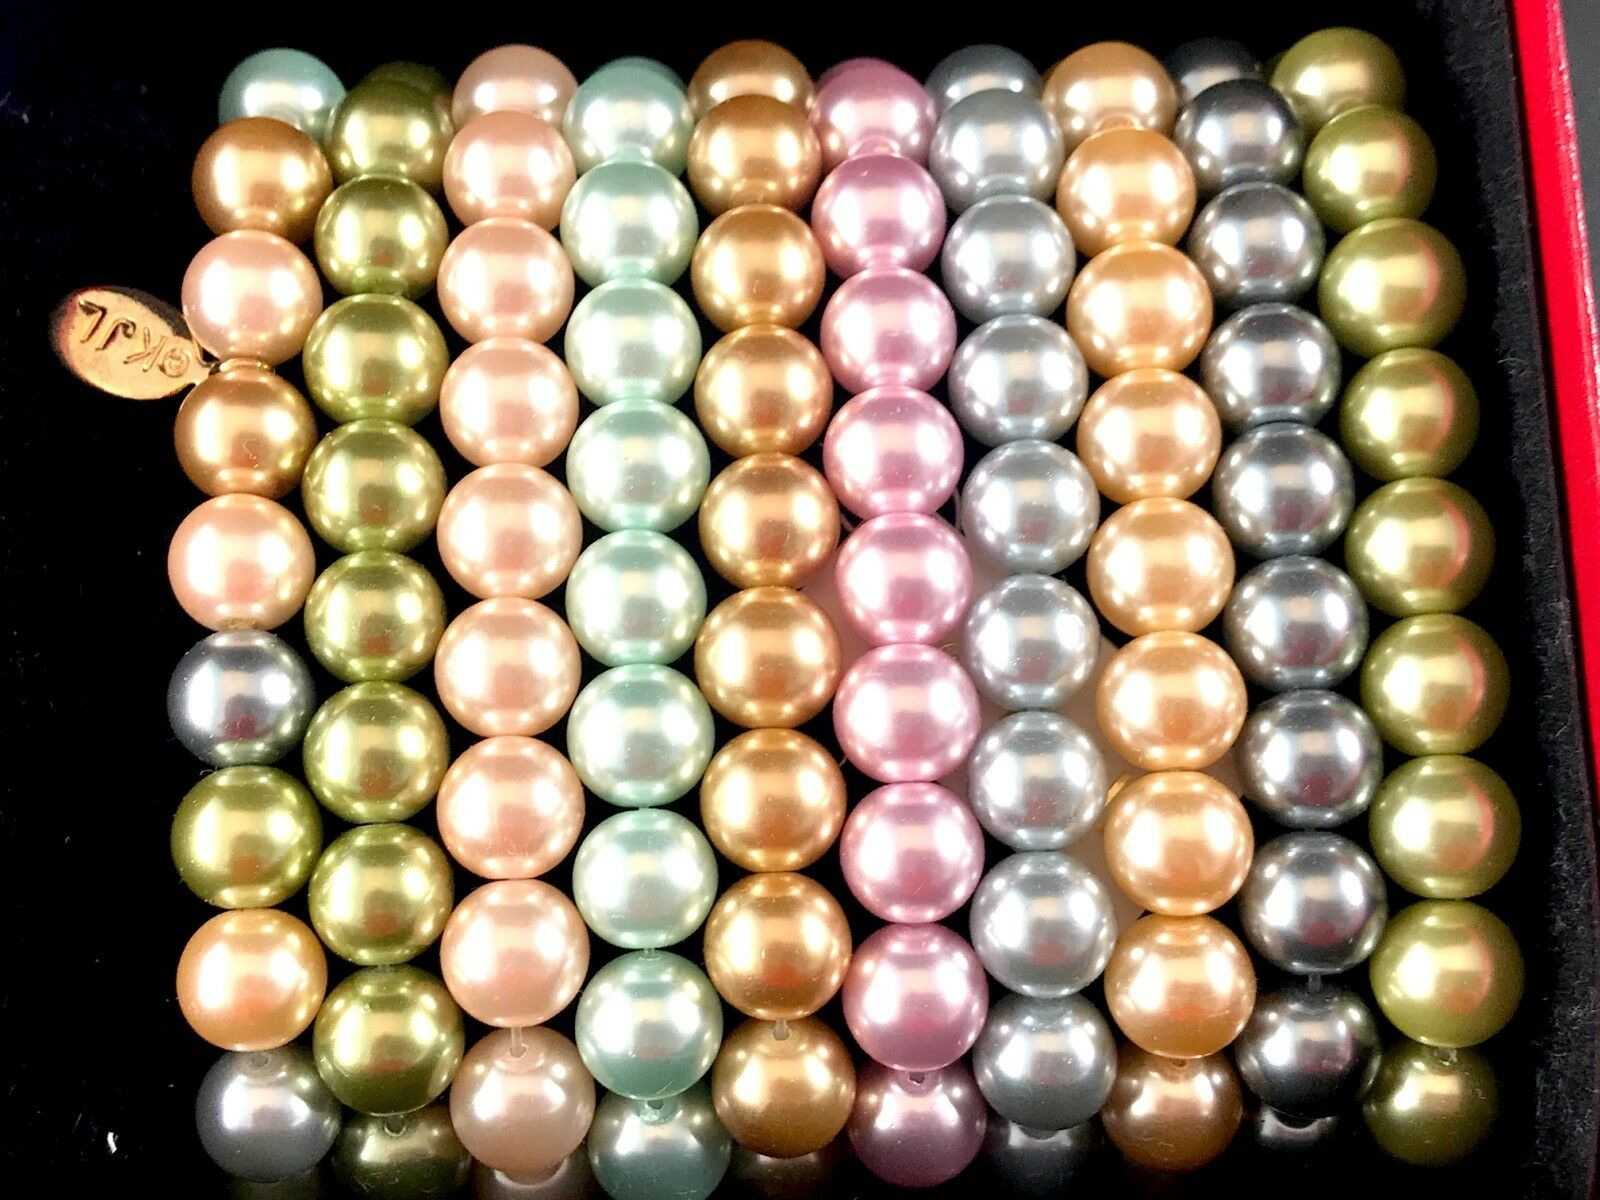 NIB KENNETH JAY LANE FIRST LADY SIMULATED PEARL PASTEL COLOR BRACELET SET OF 10